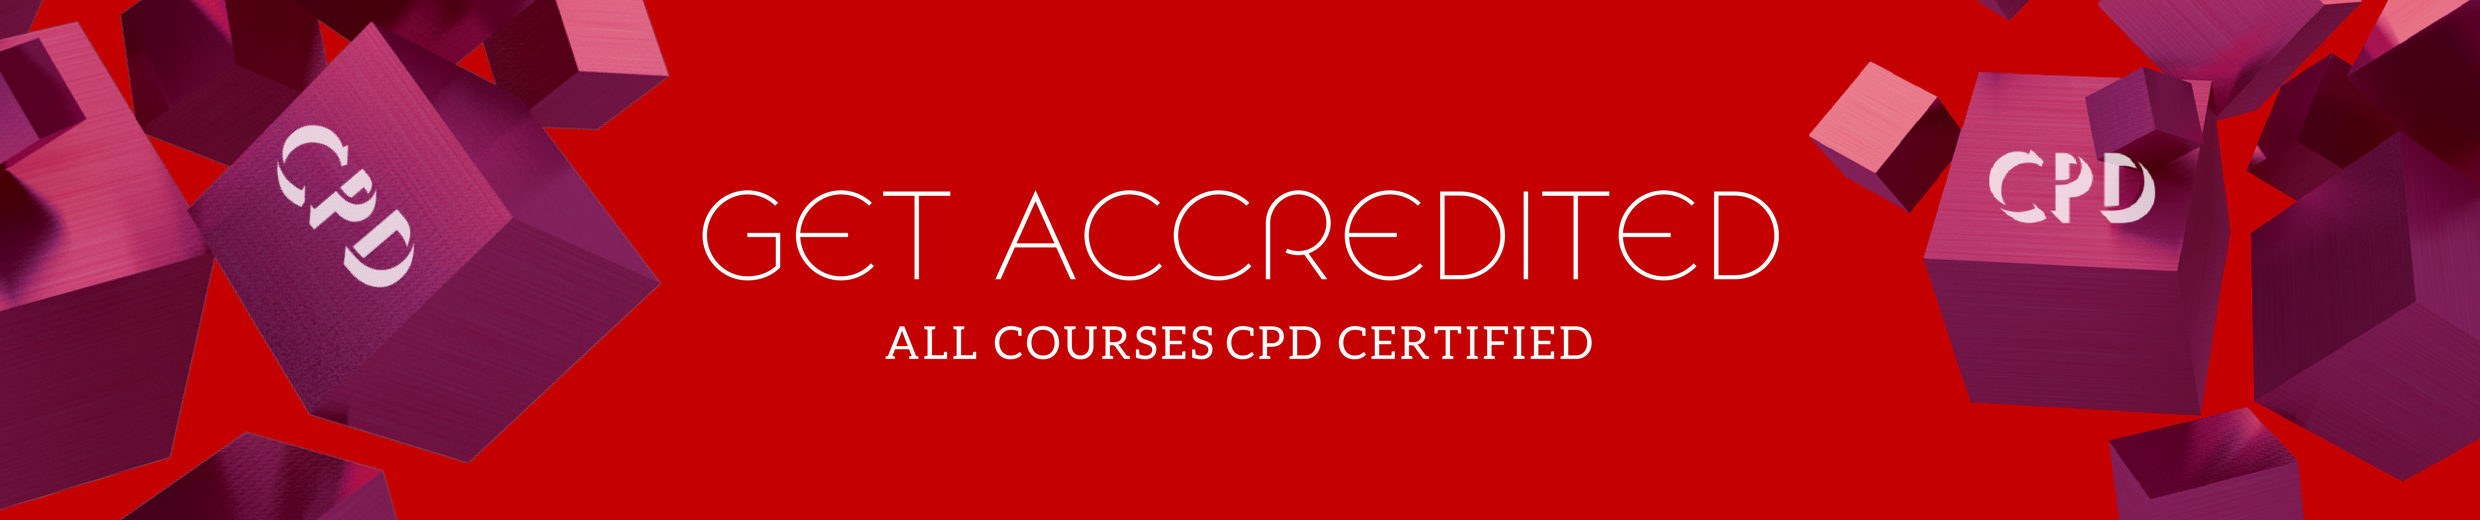 DCA_CPD_Accreditation_Banner.png